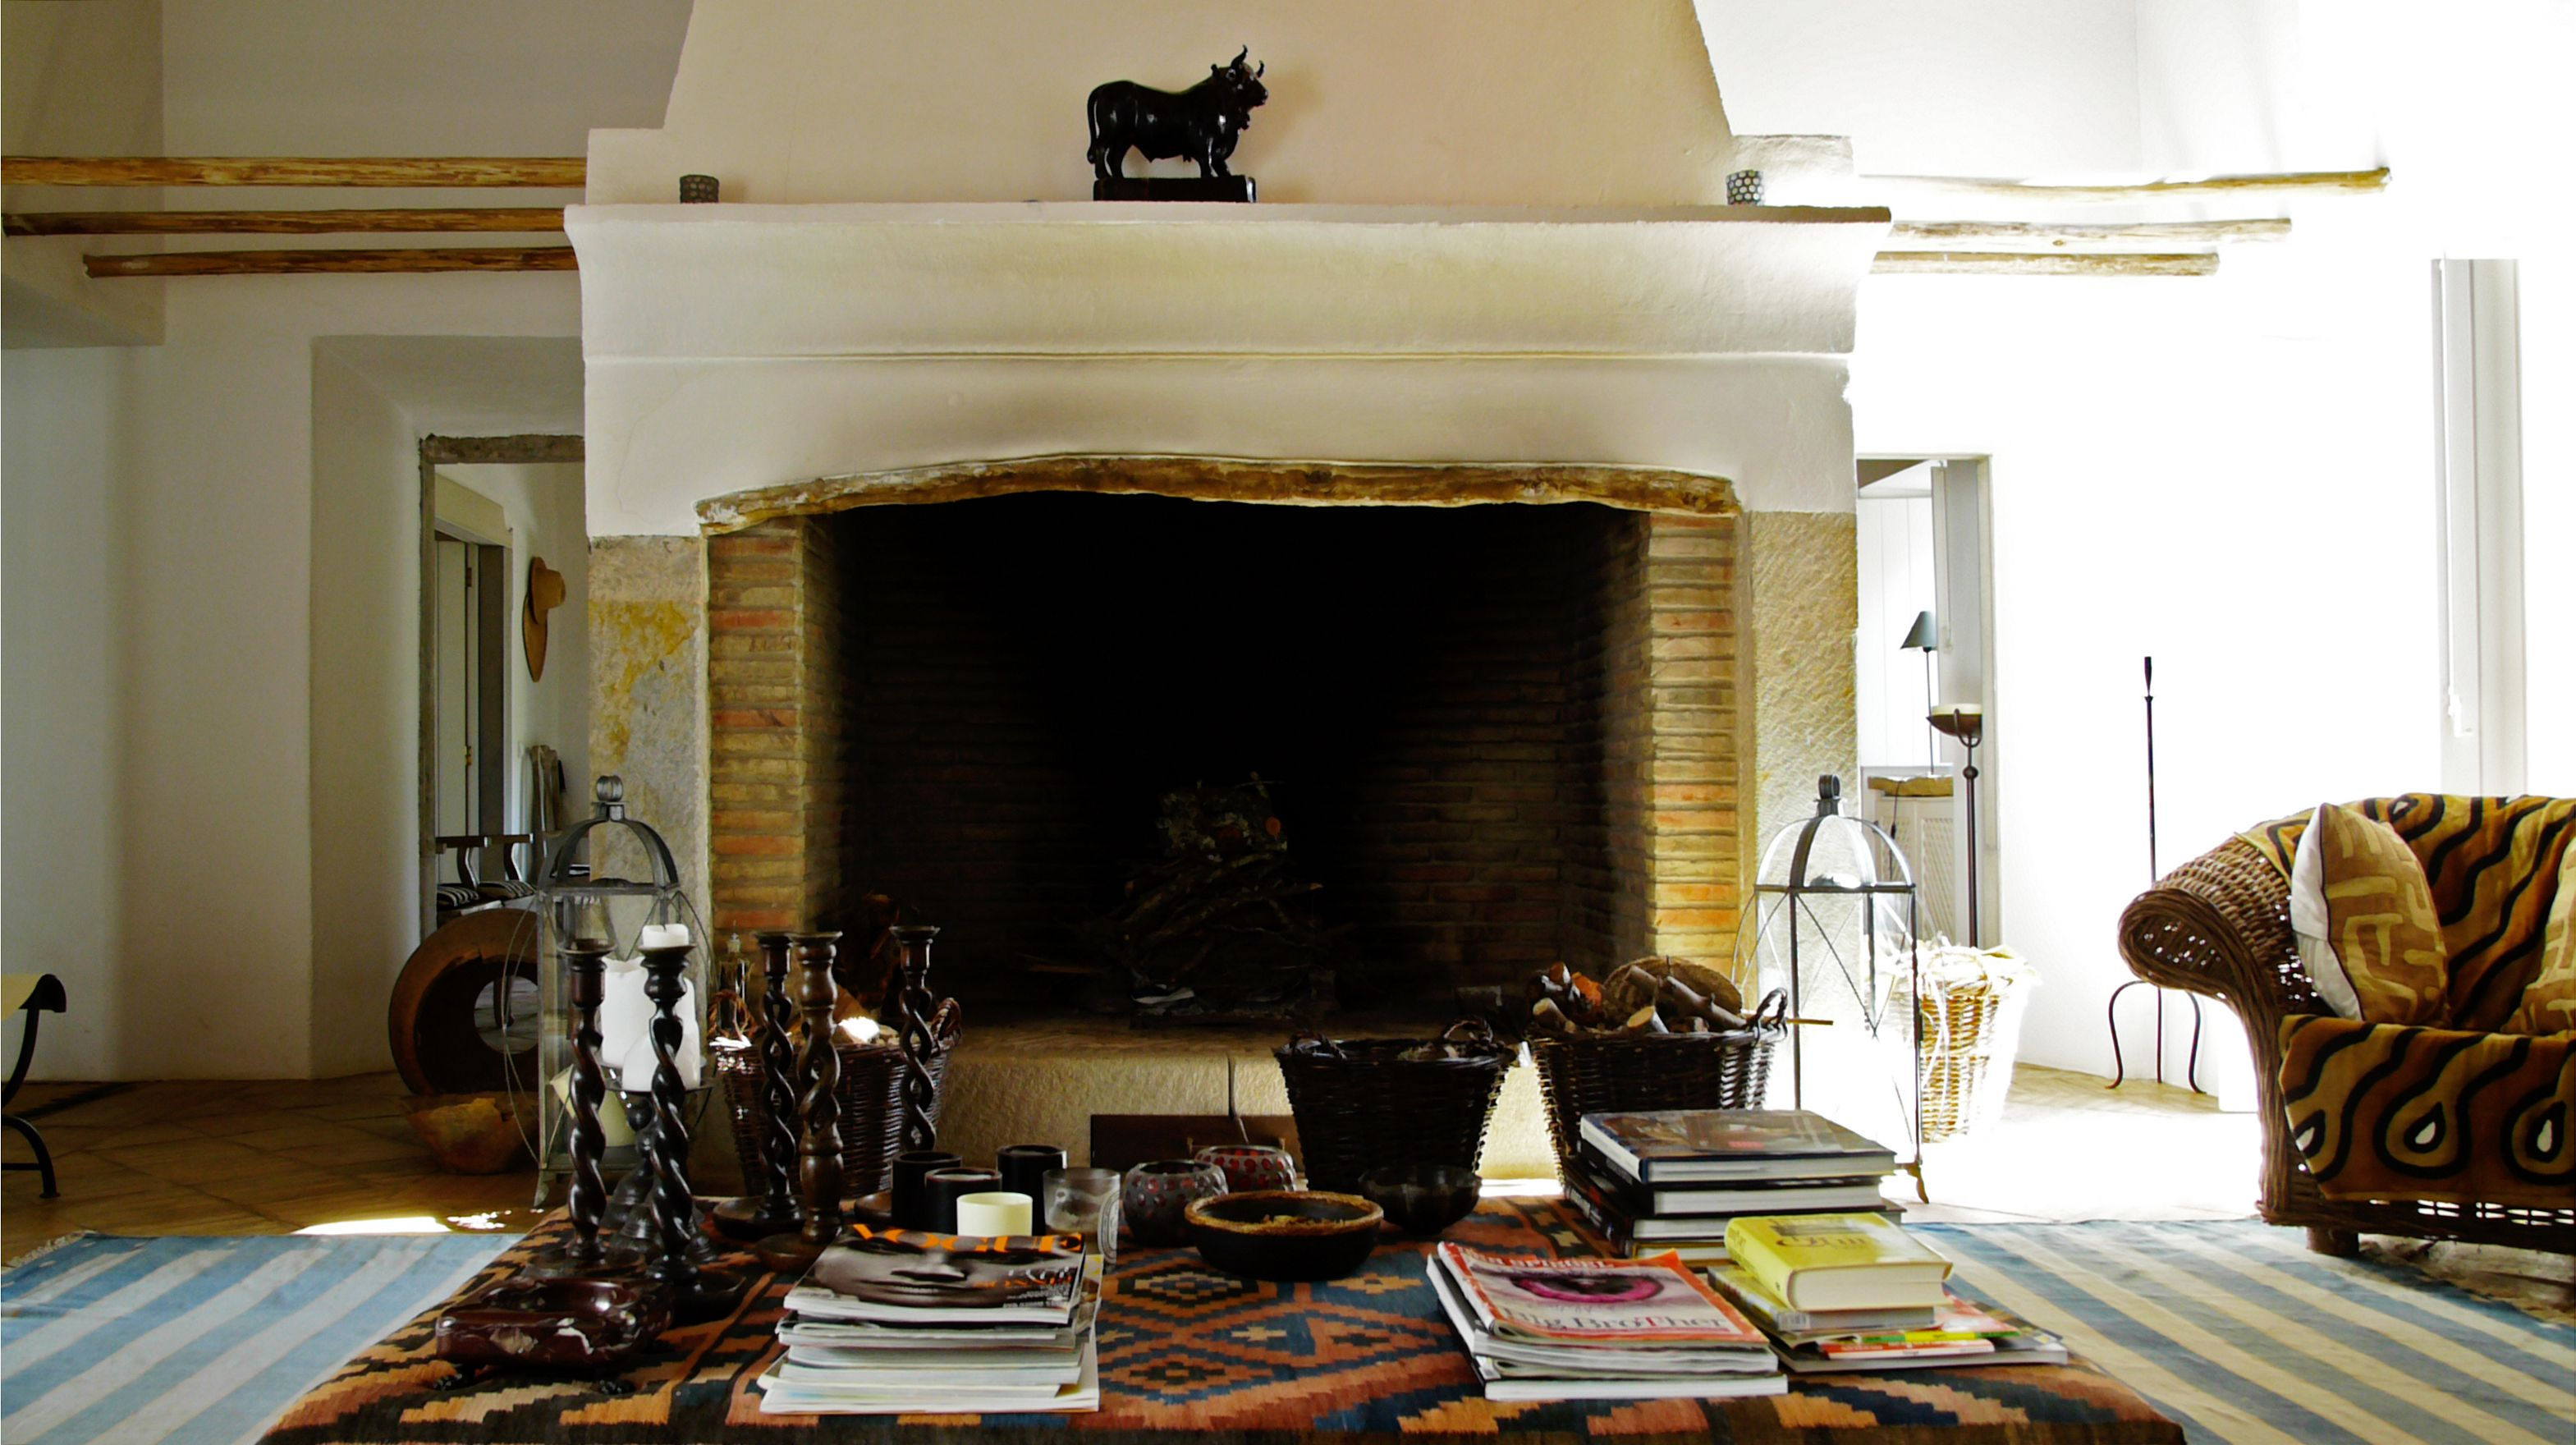 MONTE DA PALMEIRA Living Room with large fireplace